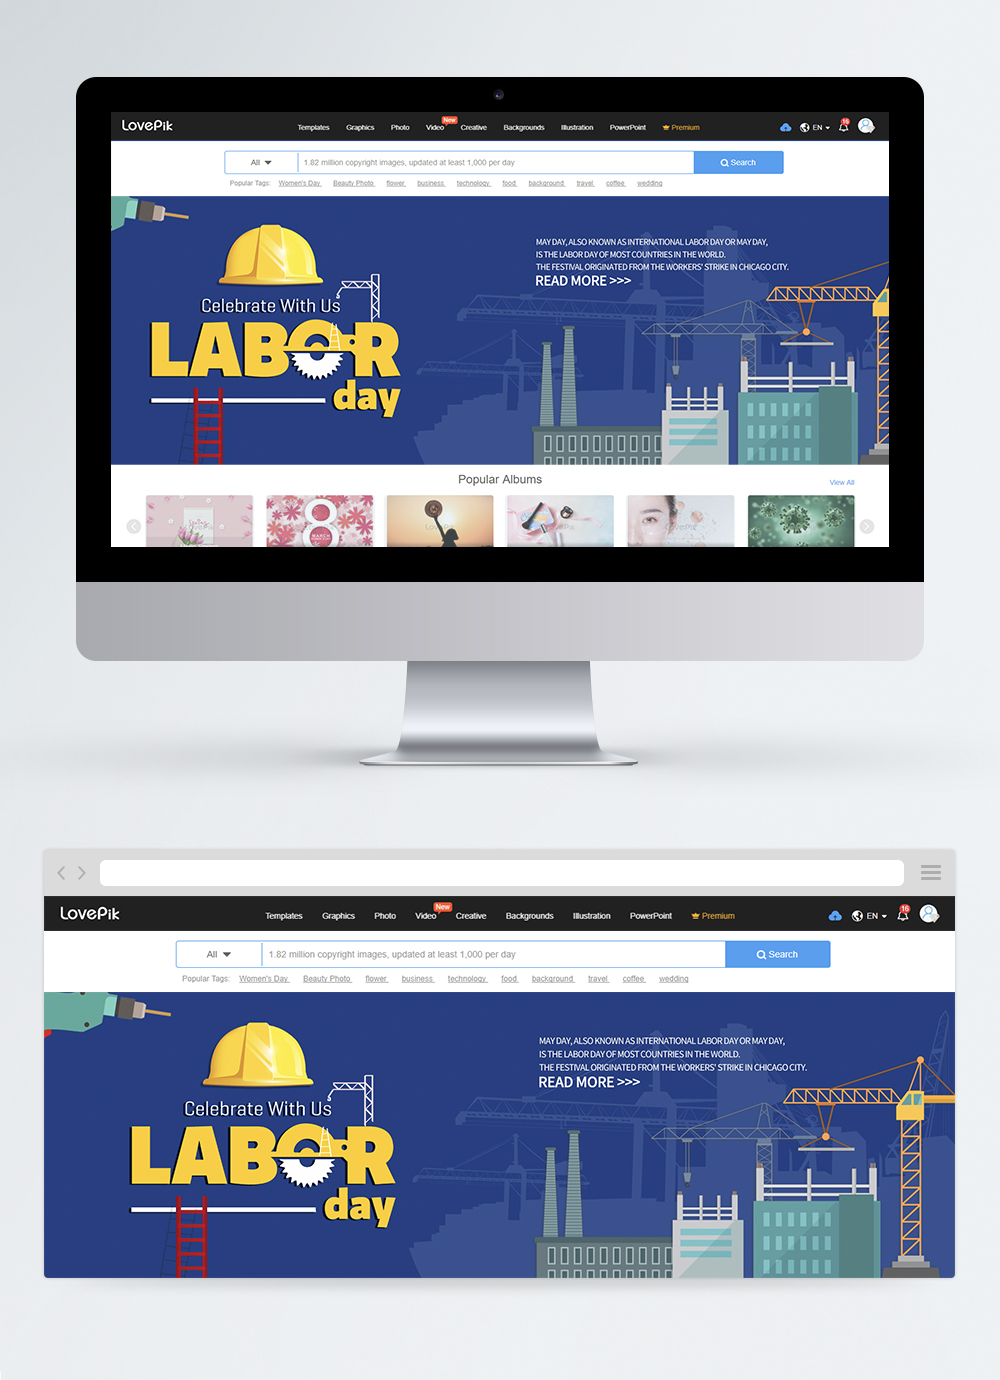 International Labor Day Sale Web Banner Design Template Image Picture Free Download 450006539 Lovepik Com